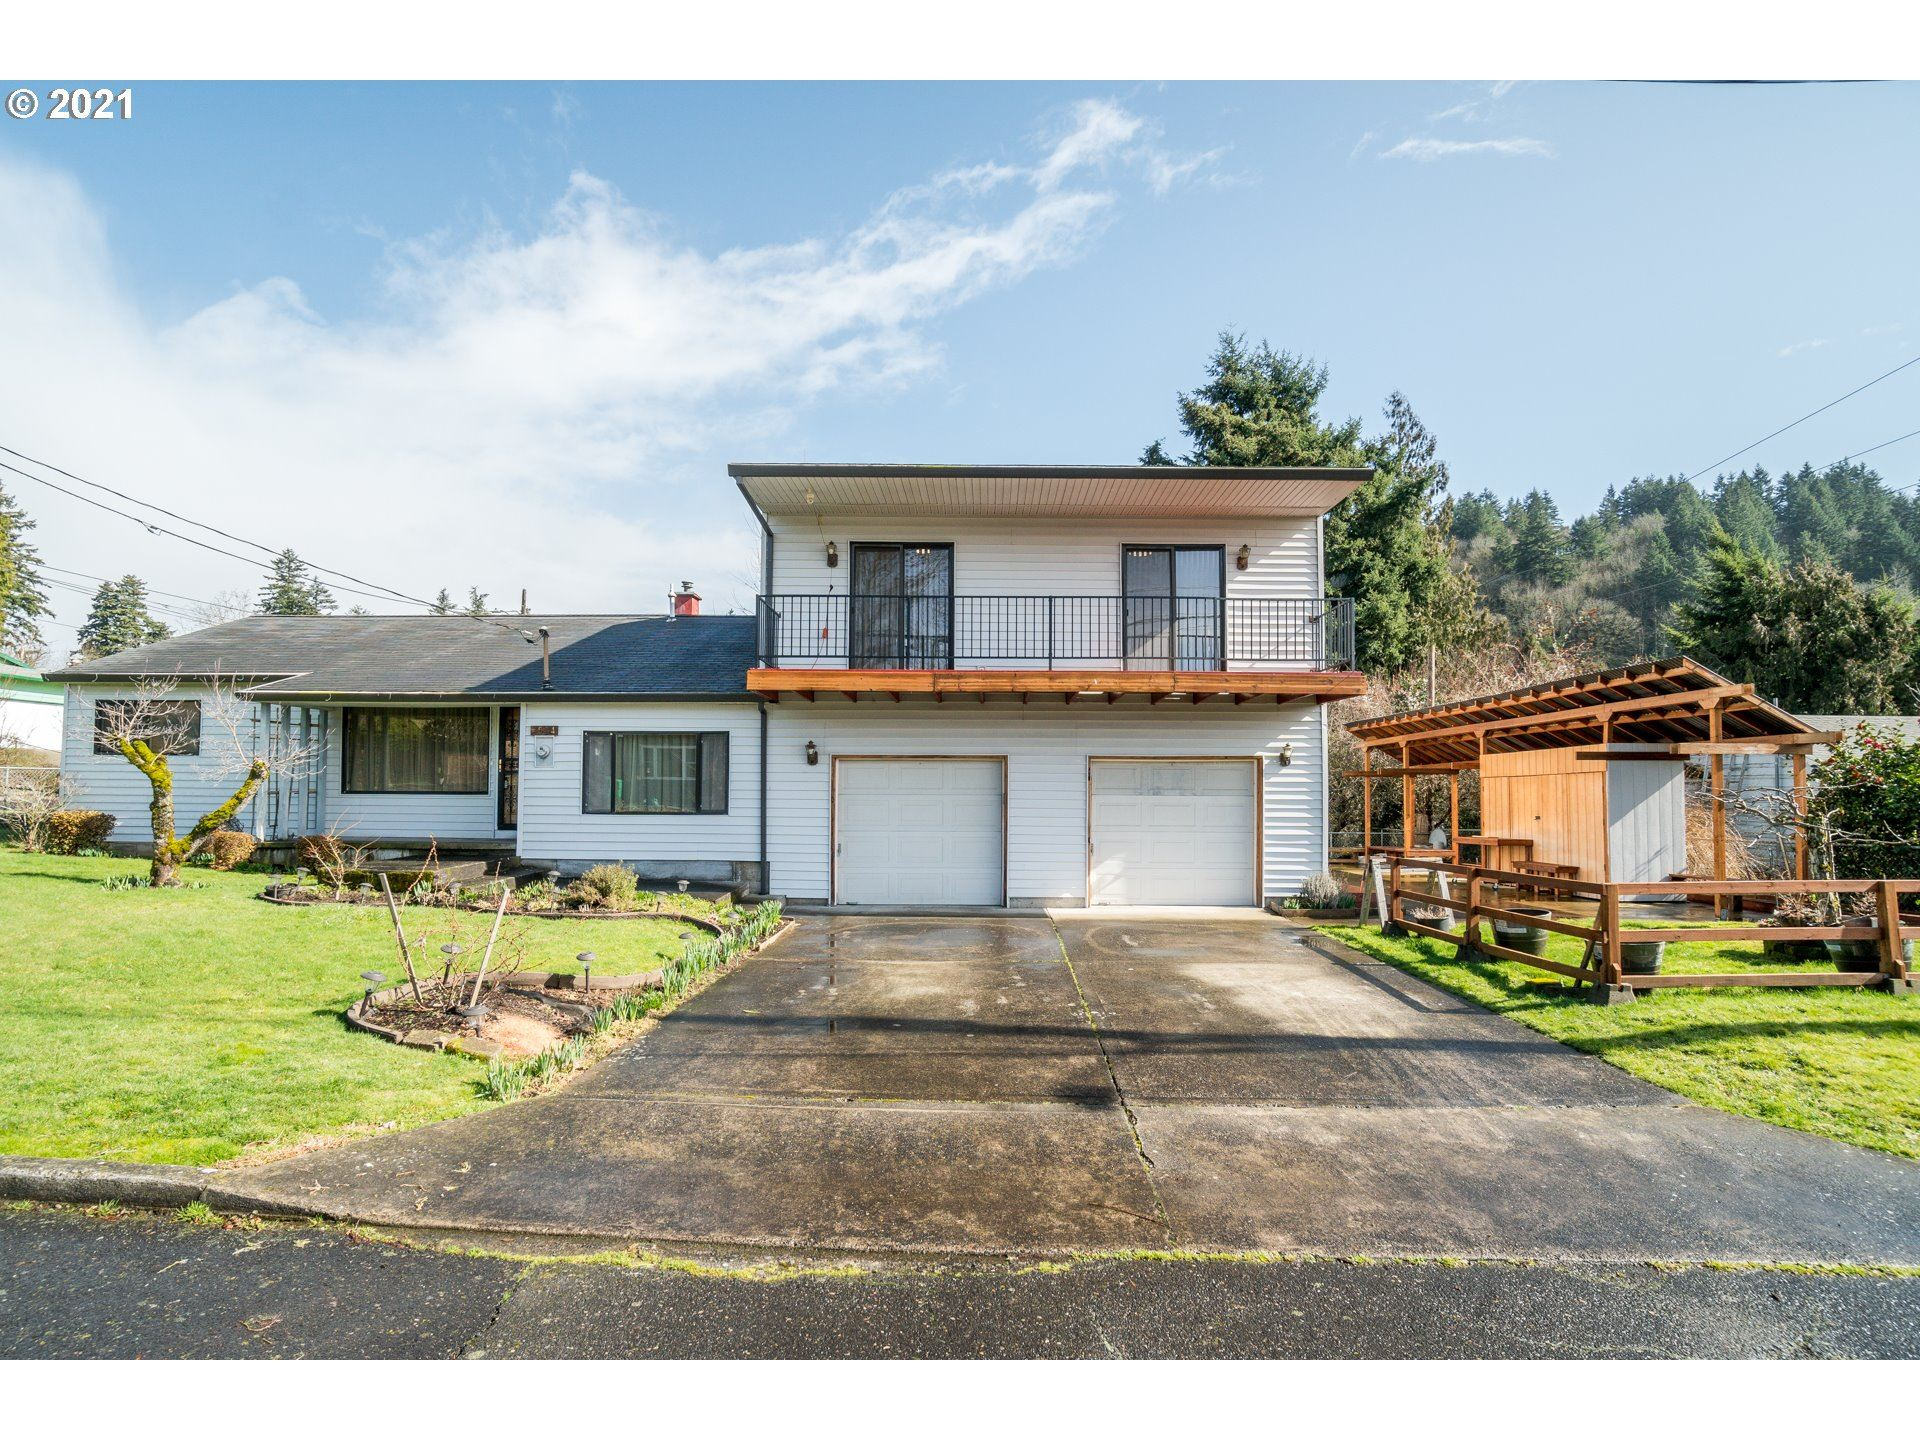 3534 NE 88TH AVE, Portland, OR 97220 - MLS#: 20553492